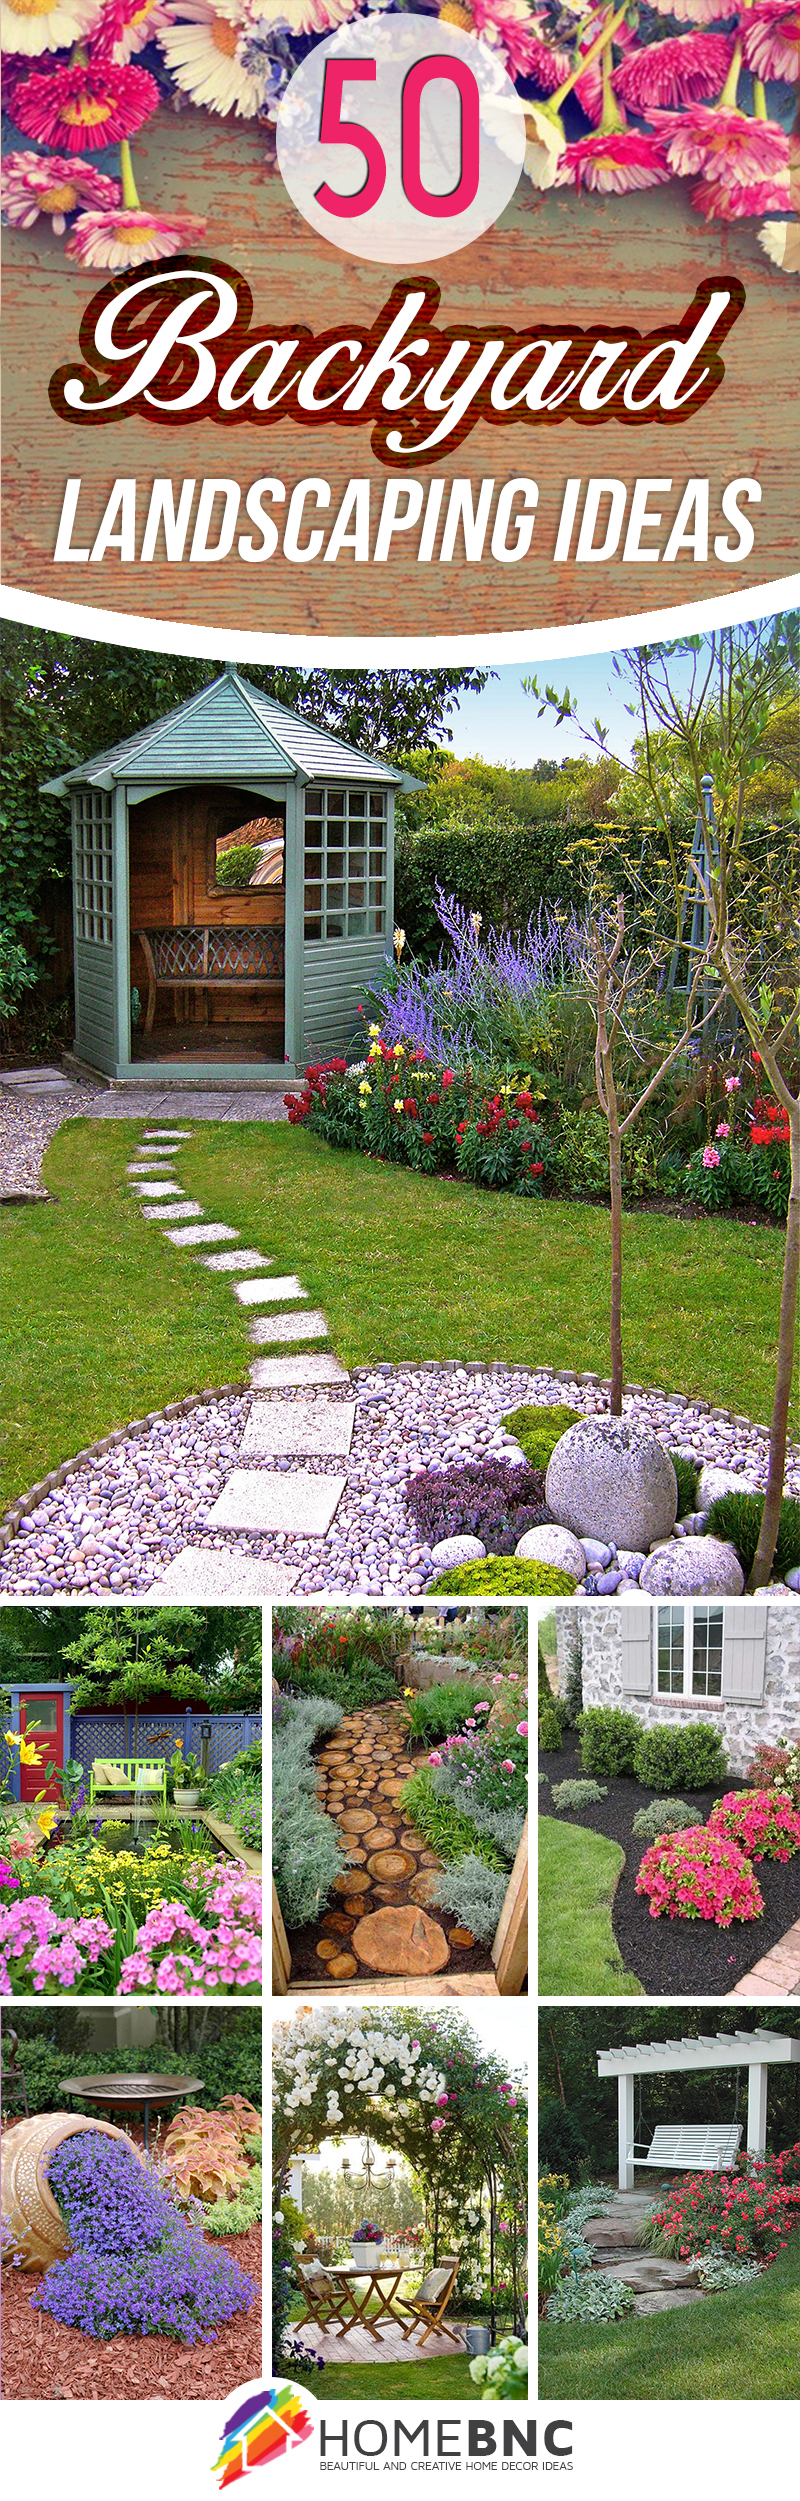 50 Best Backyard Landscaping Ideas And Designs In 2019 in 11 Genius Tricks of How to Make Backyard Landscaping Ideas Pictures